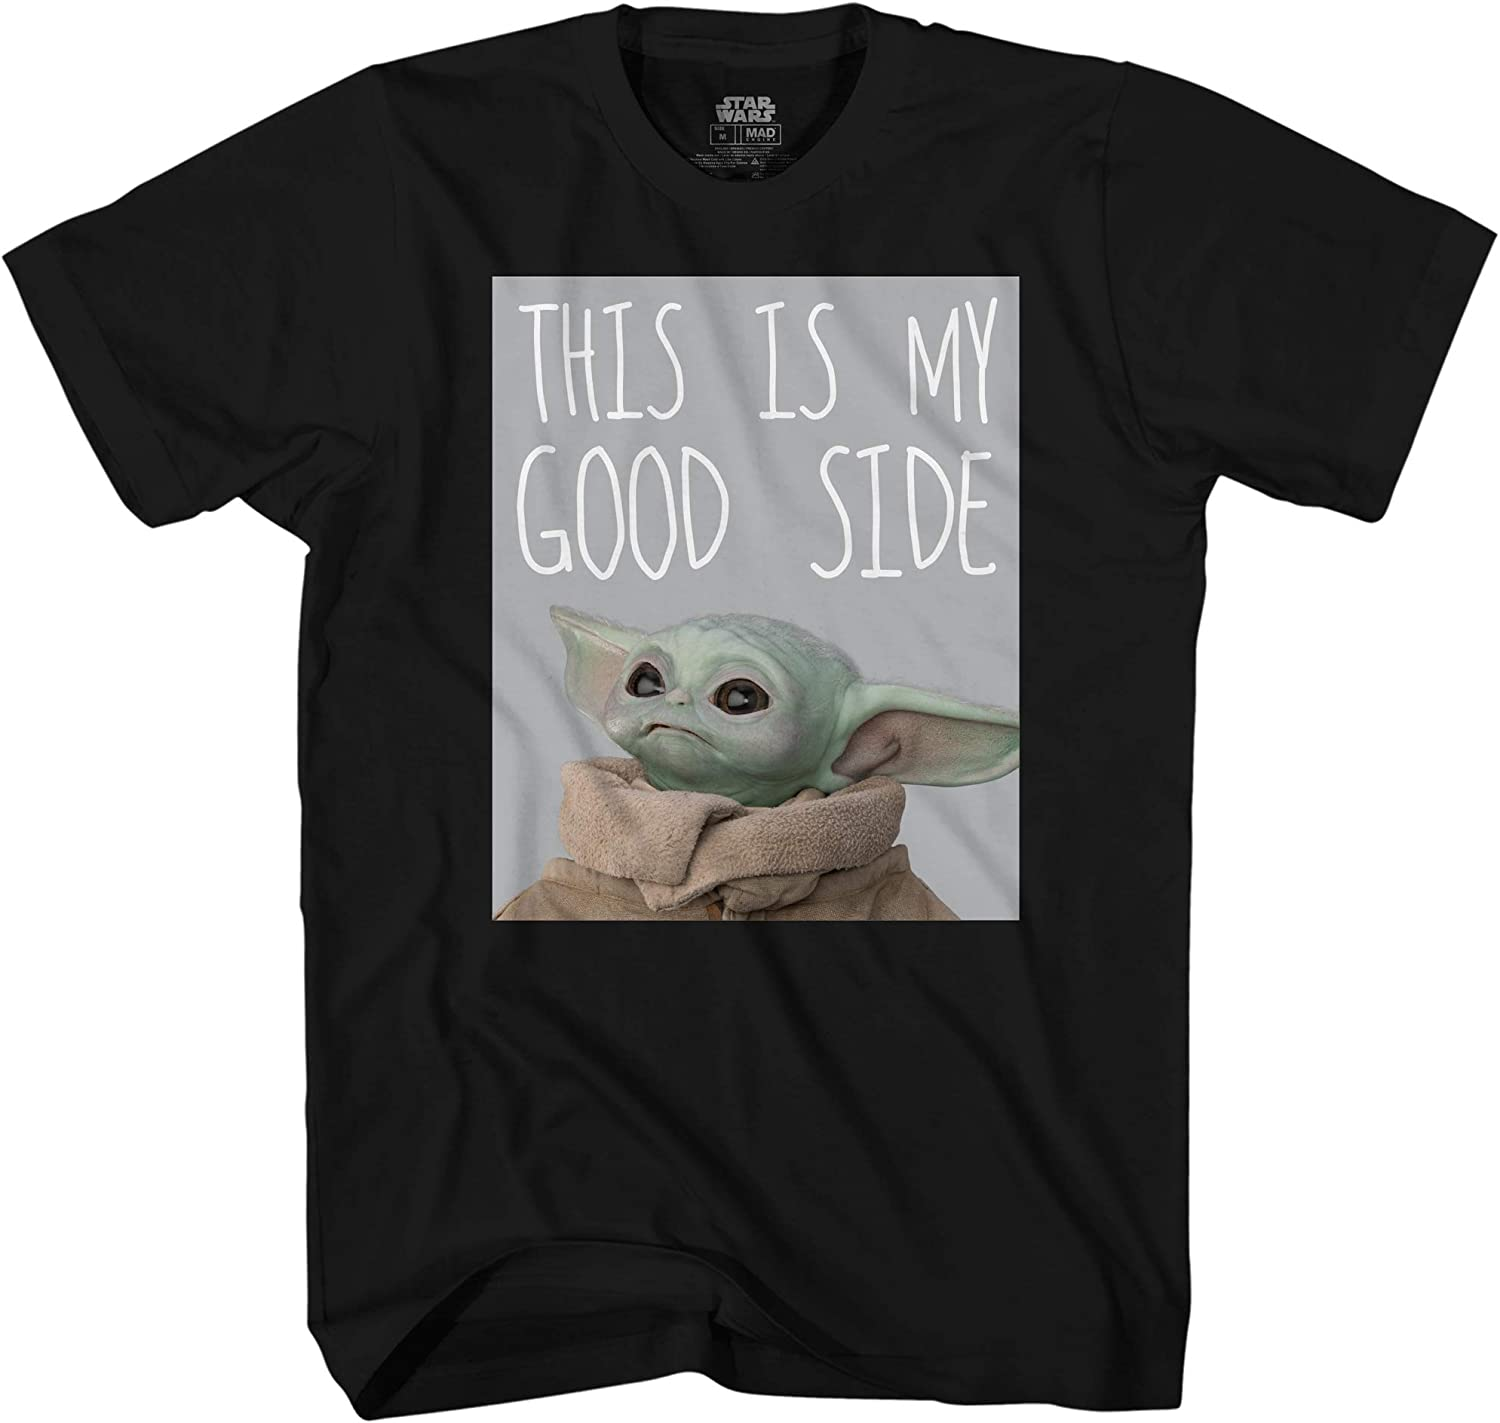 STAR WARS The Mandalorian The Child This is My Good Side Baby Yoda T-Shirt